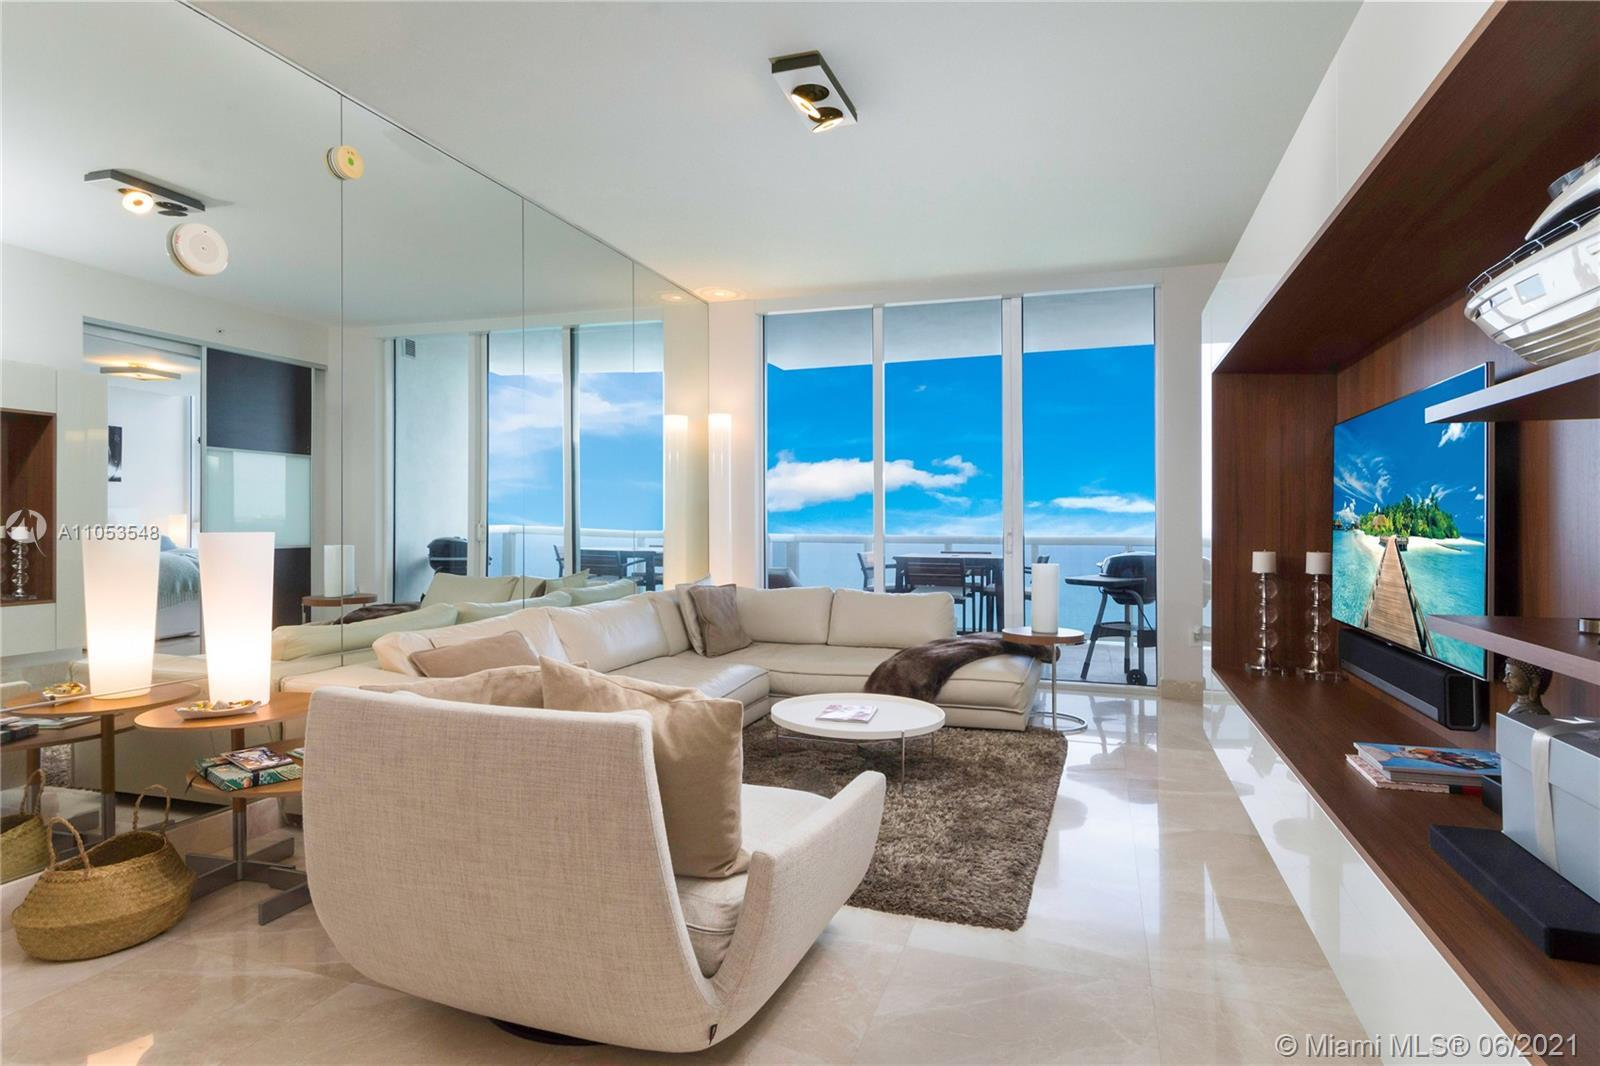 This 2 Bedrooms, / 2,5 Bathrooms residence boasting breathtaking ocean views from every room and spa